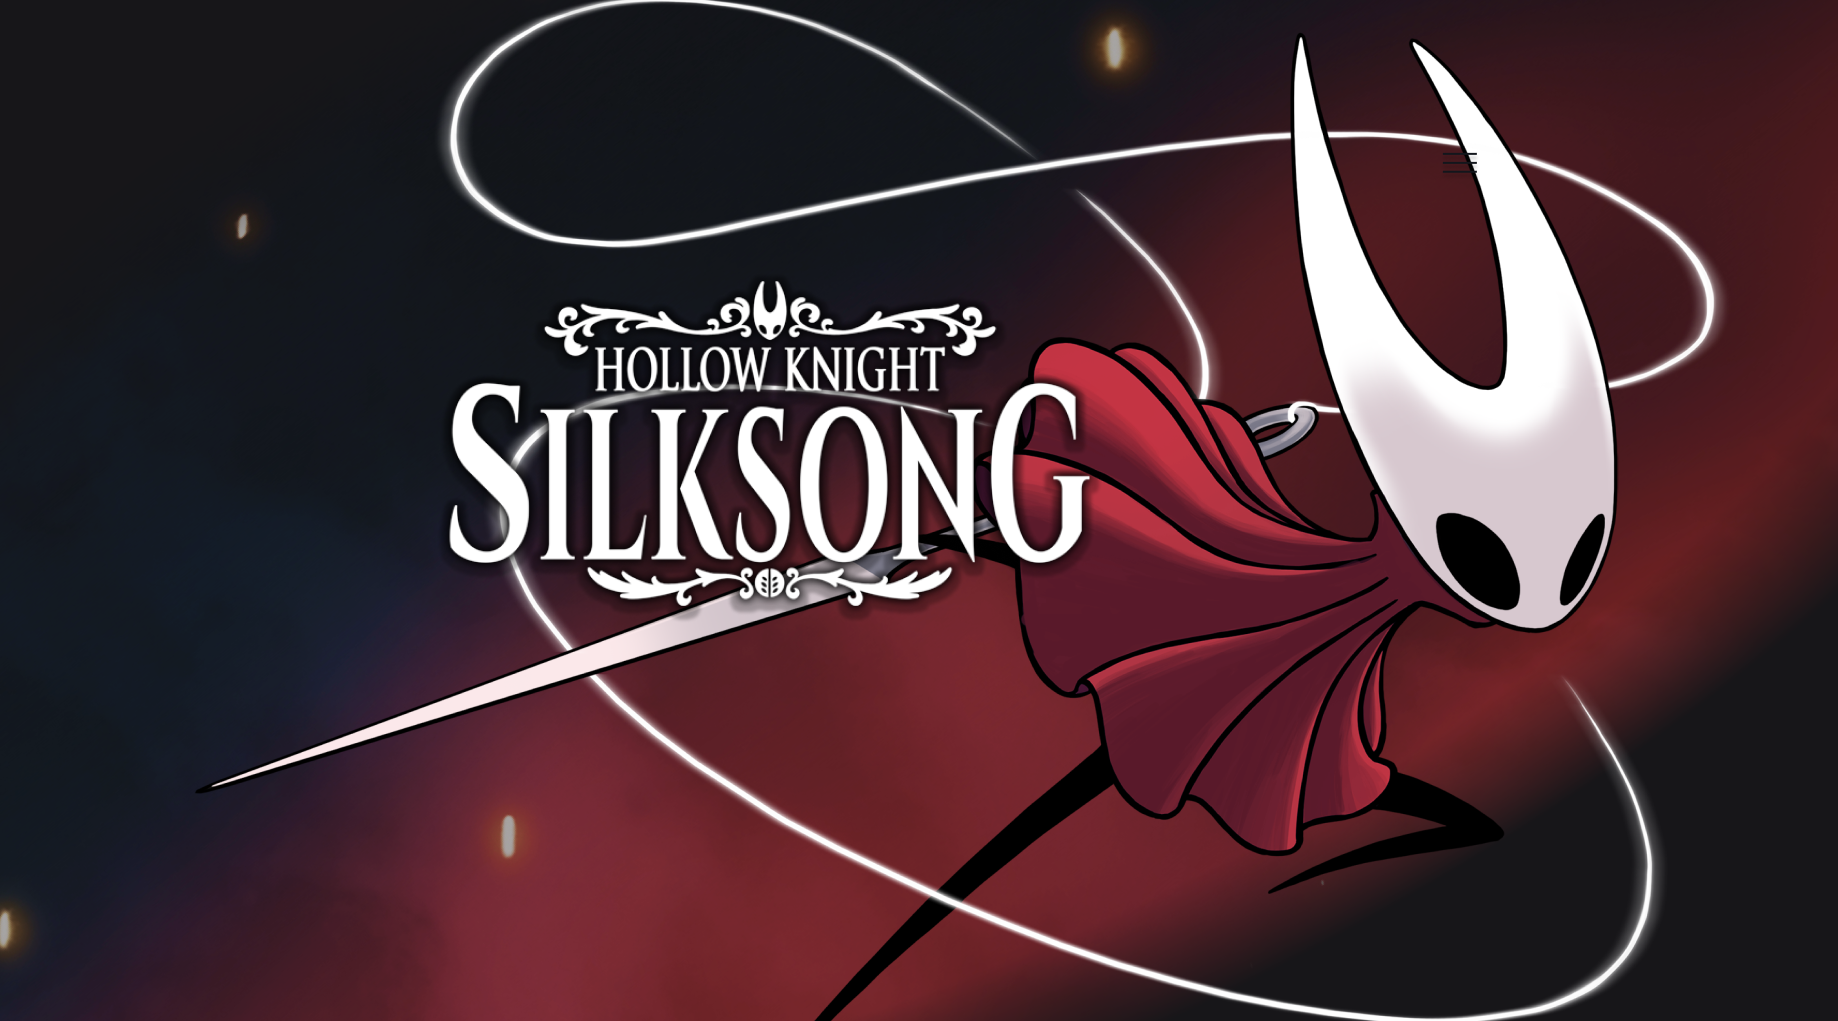 Pin On Web Design Promo Game Hollow Knight